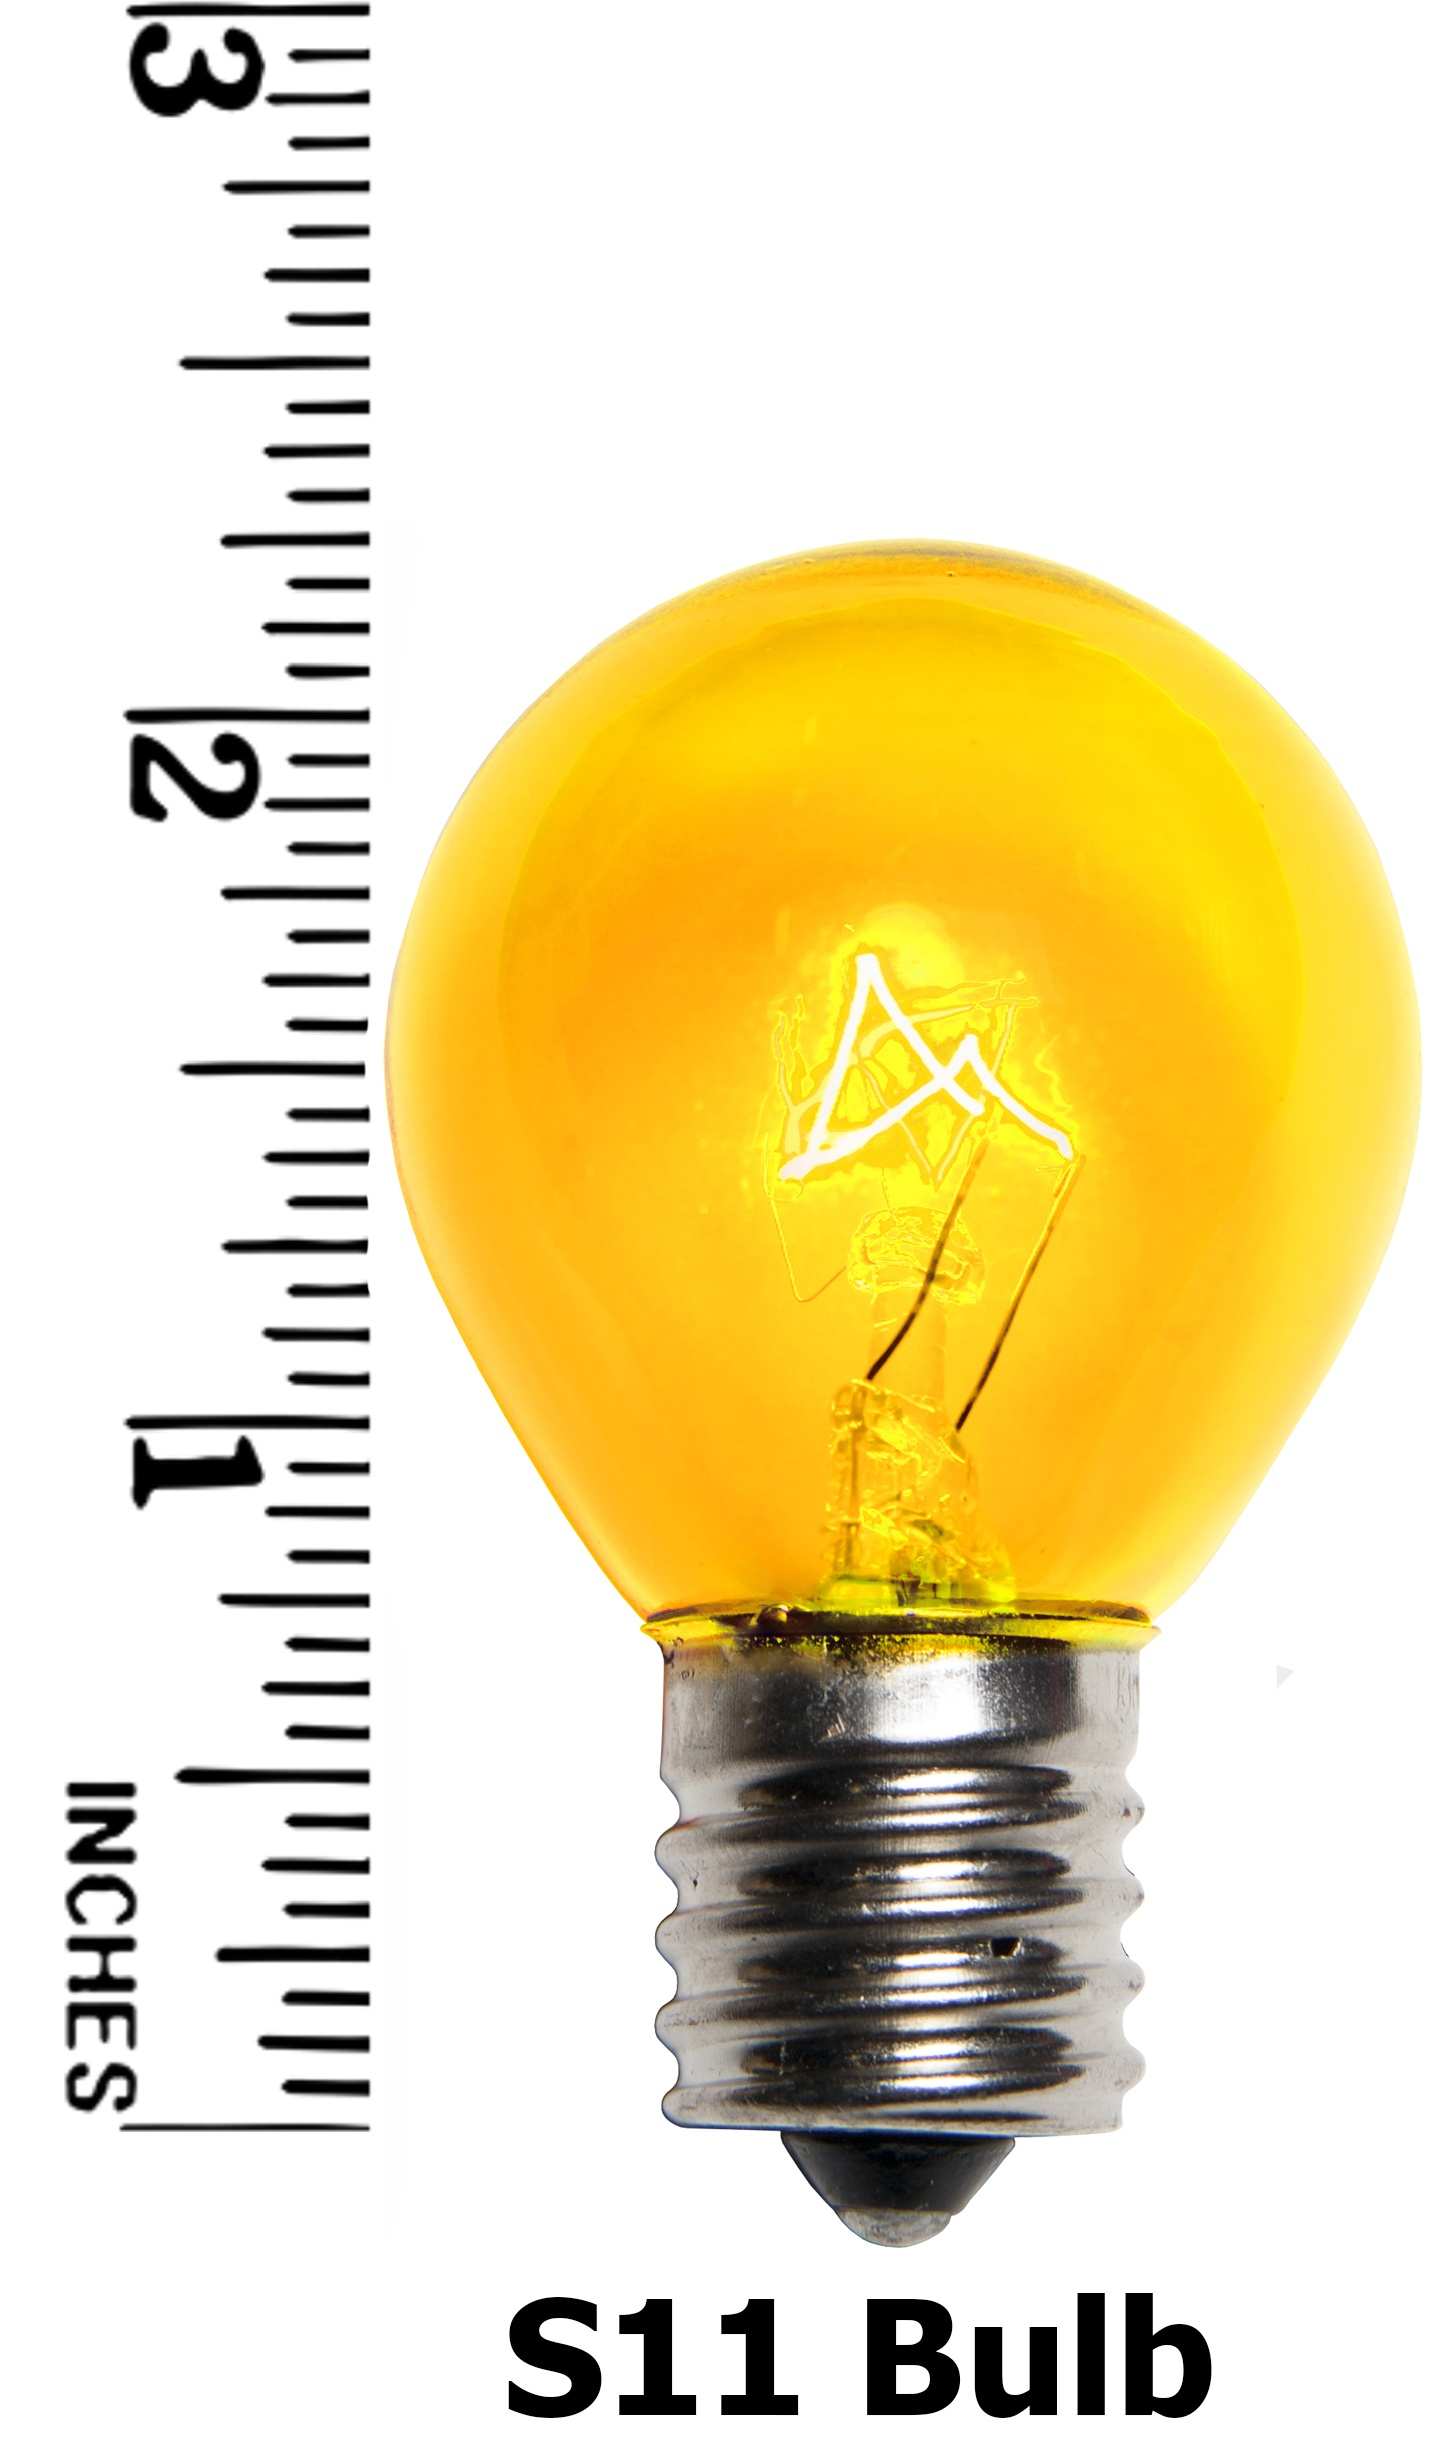 S11 Yellow Bulb Measurement